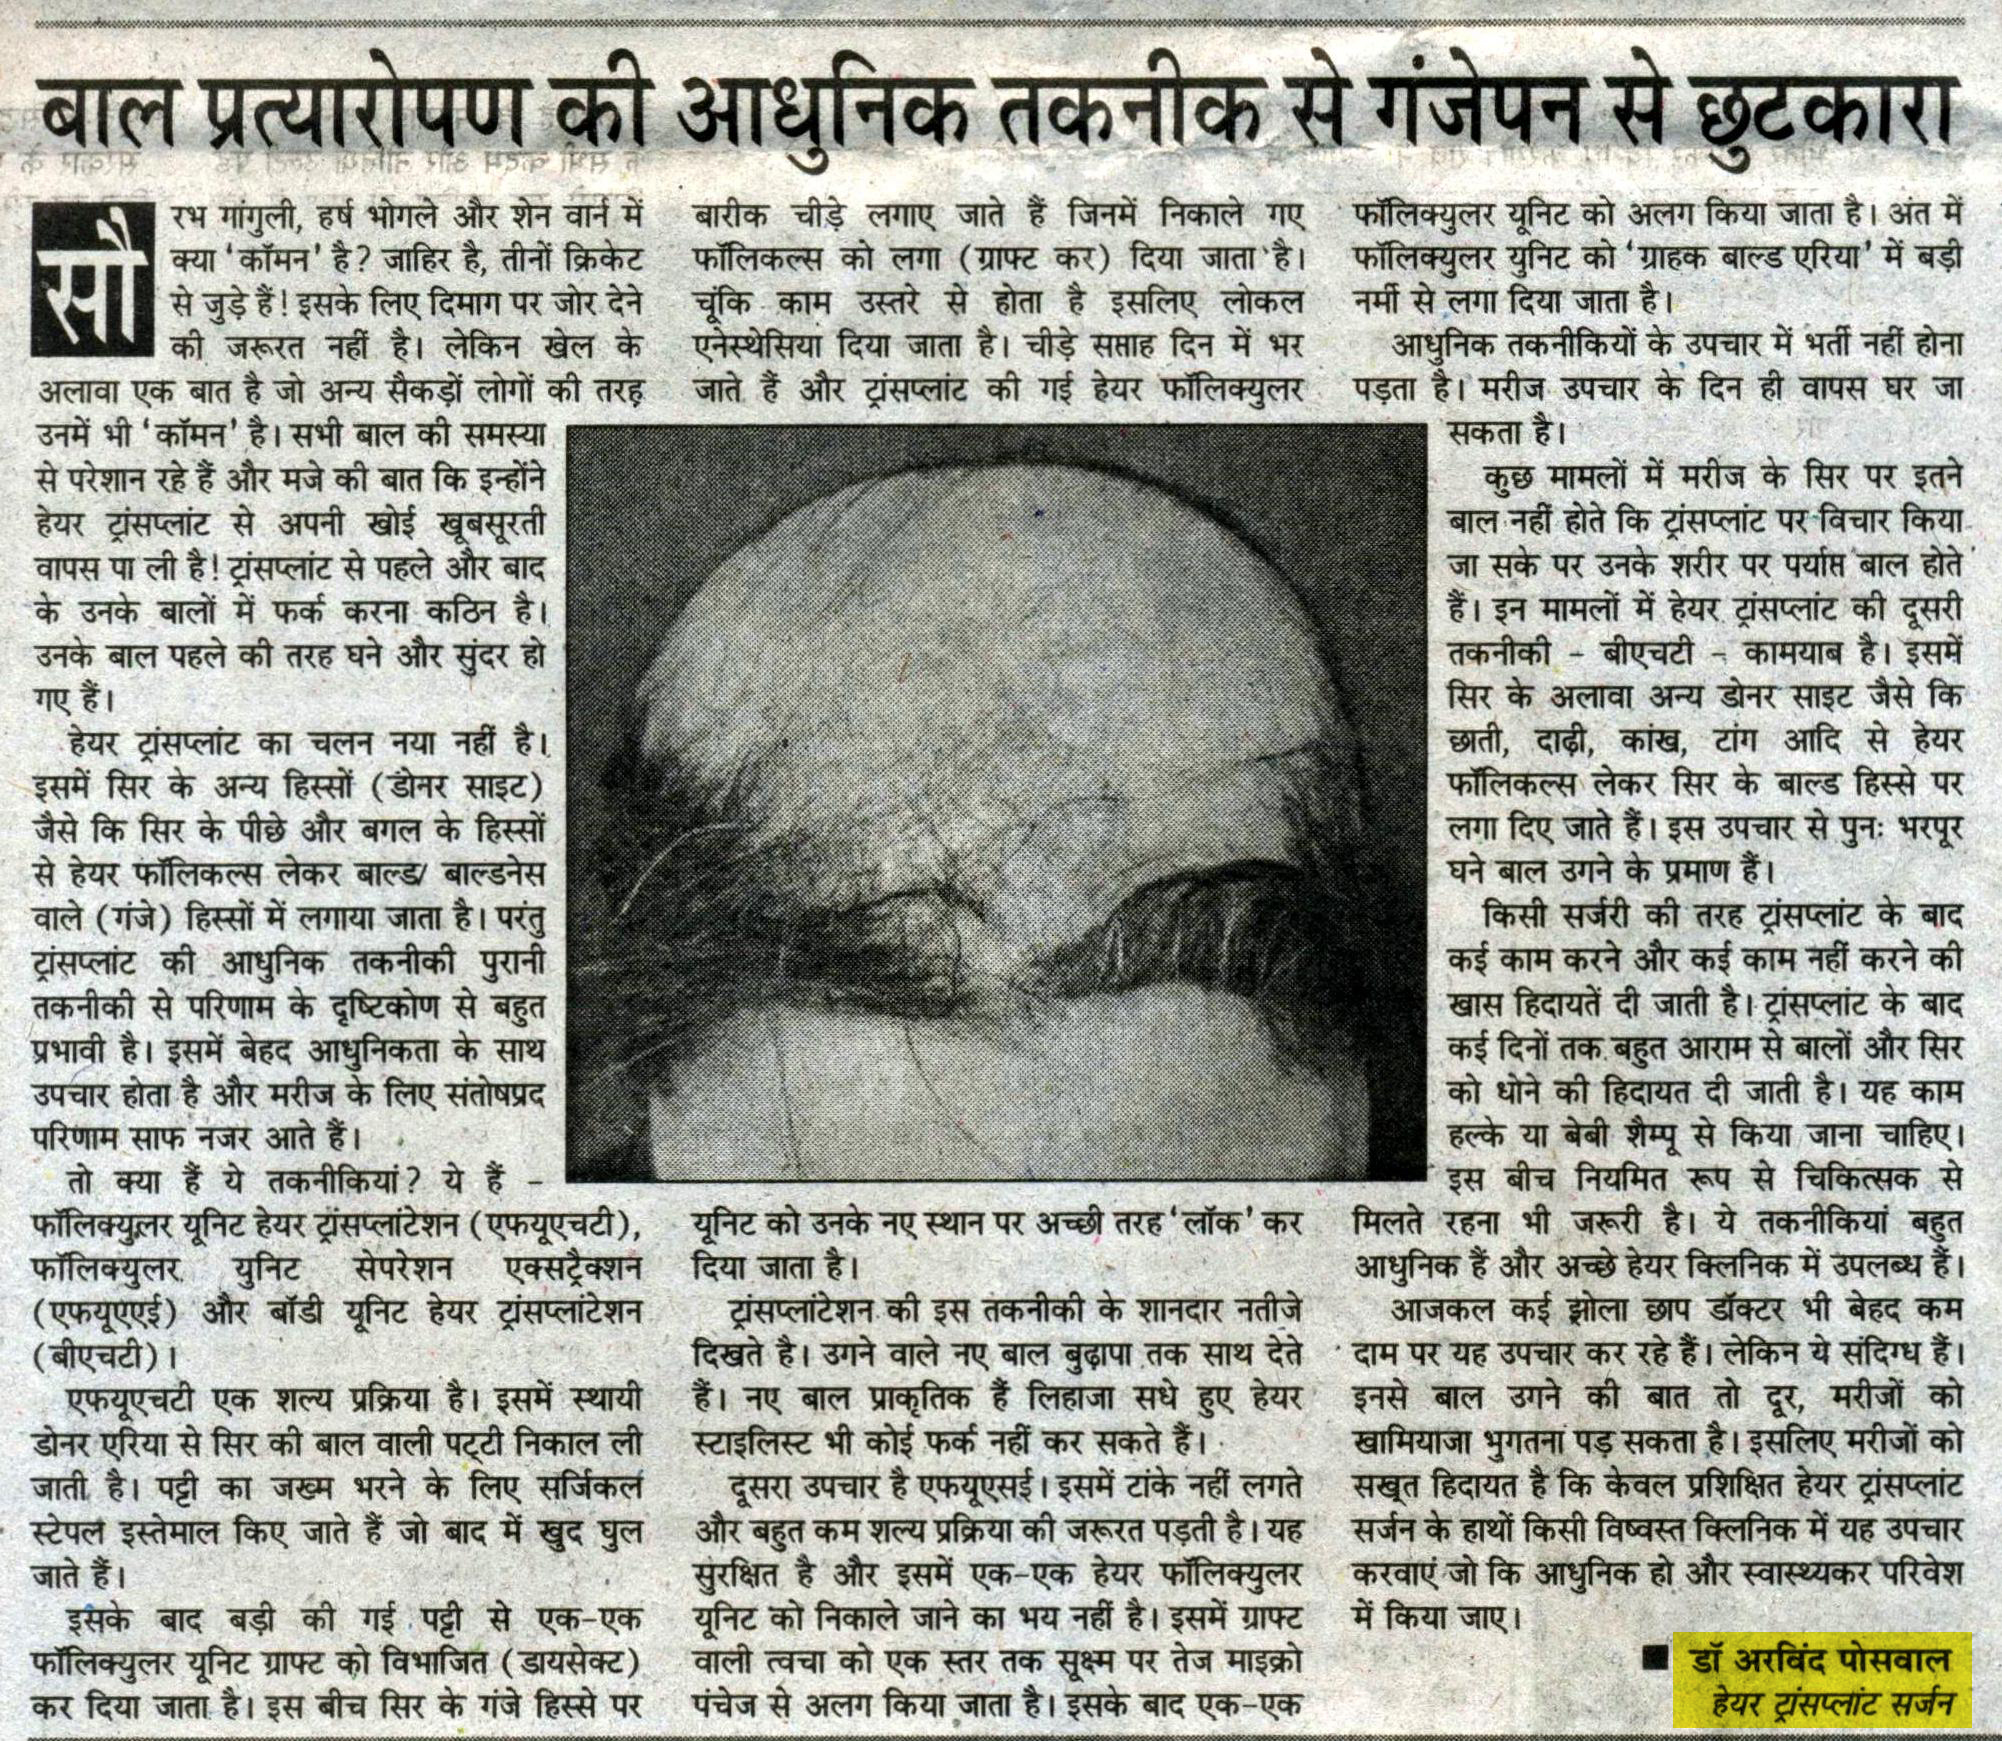 Punjab Kesari (Newspaper), 28 July 2011(New Delhi)